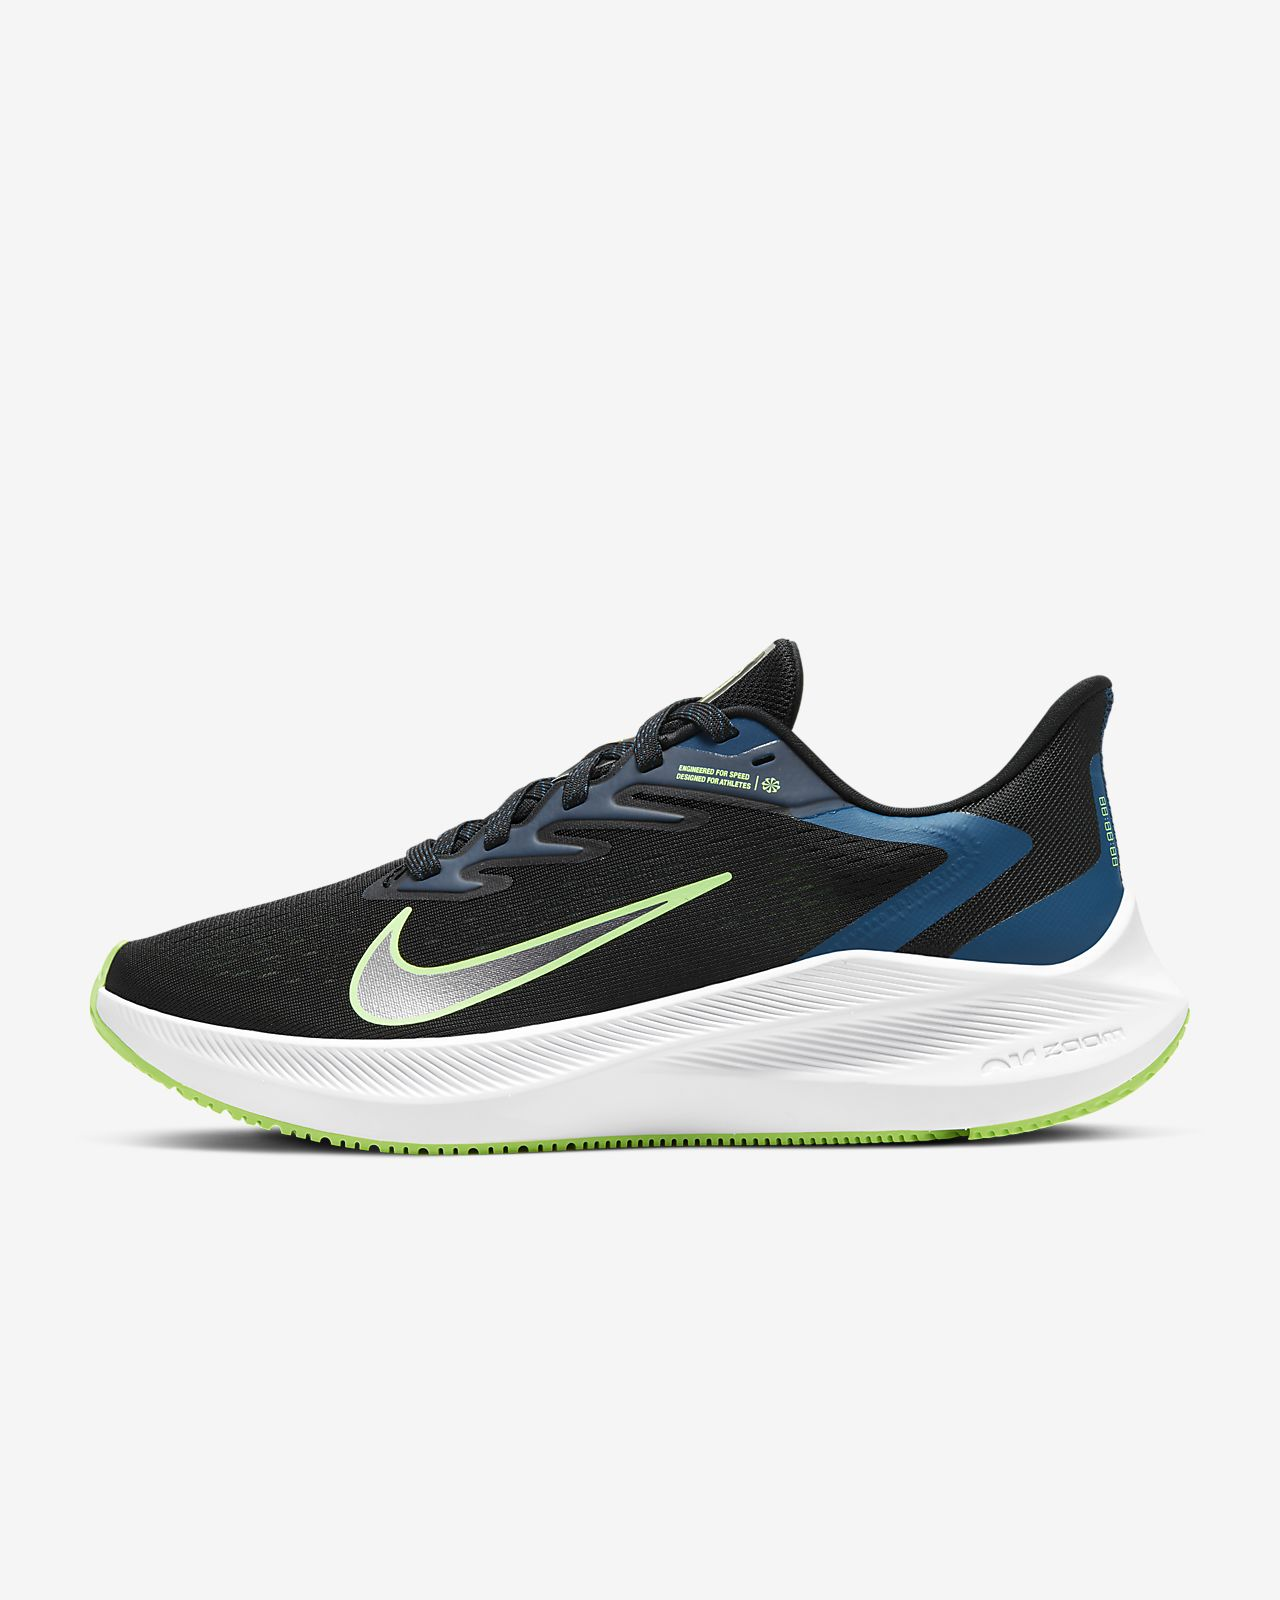 Nike Air Zoom Winflo 7 Women's Running Shoe